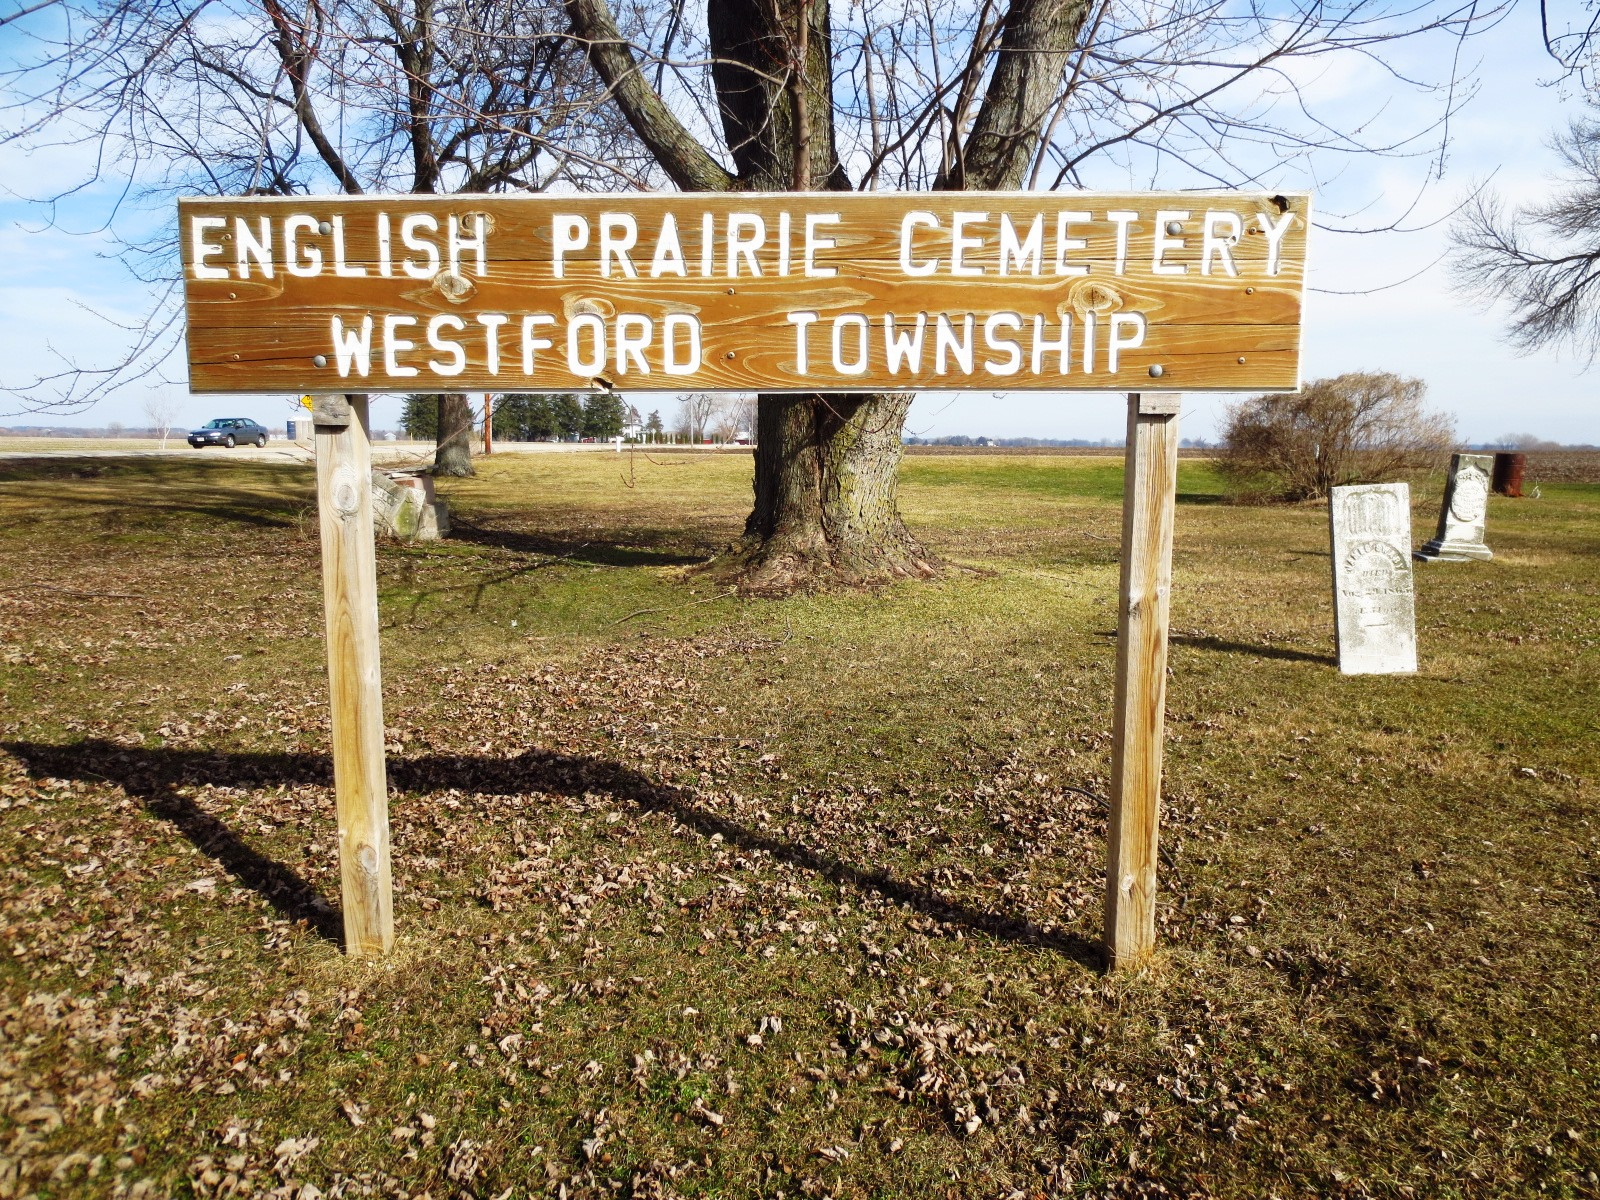 English Prairie Cemetery